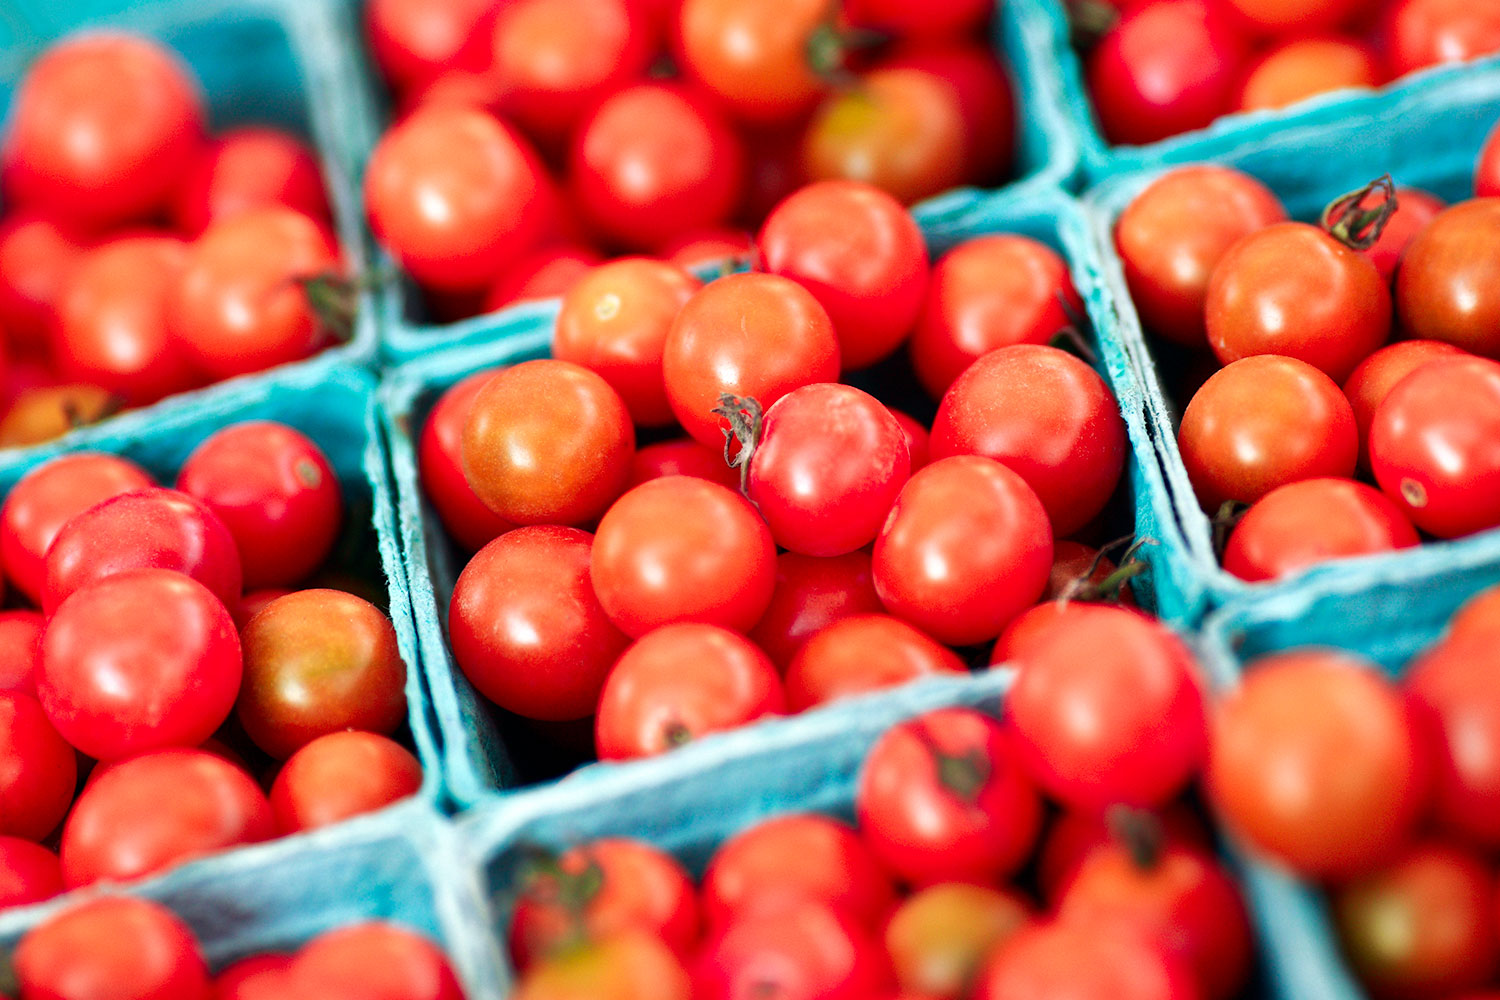 Tiny Little Red Tomatoes